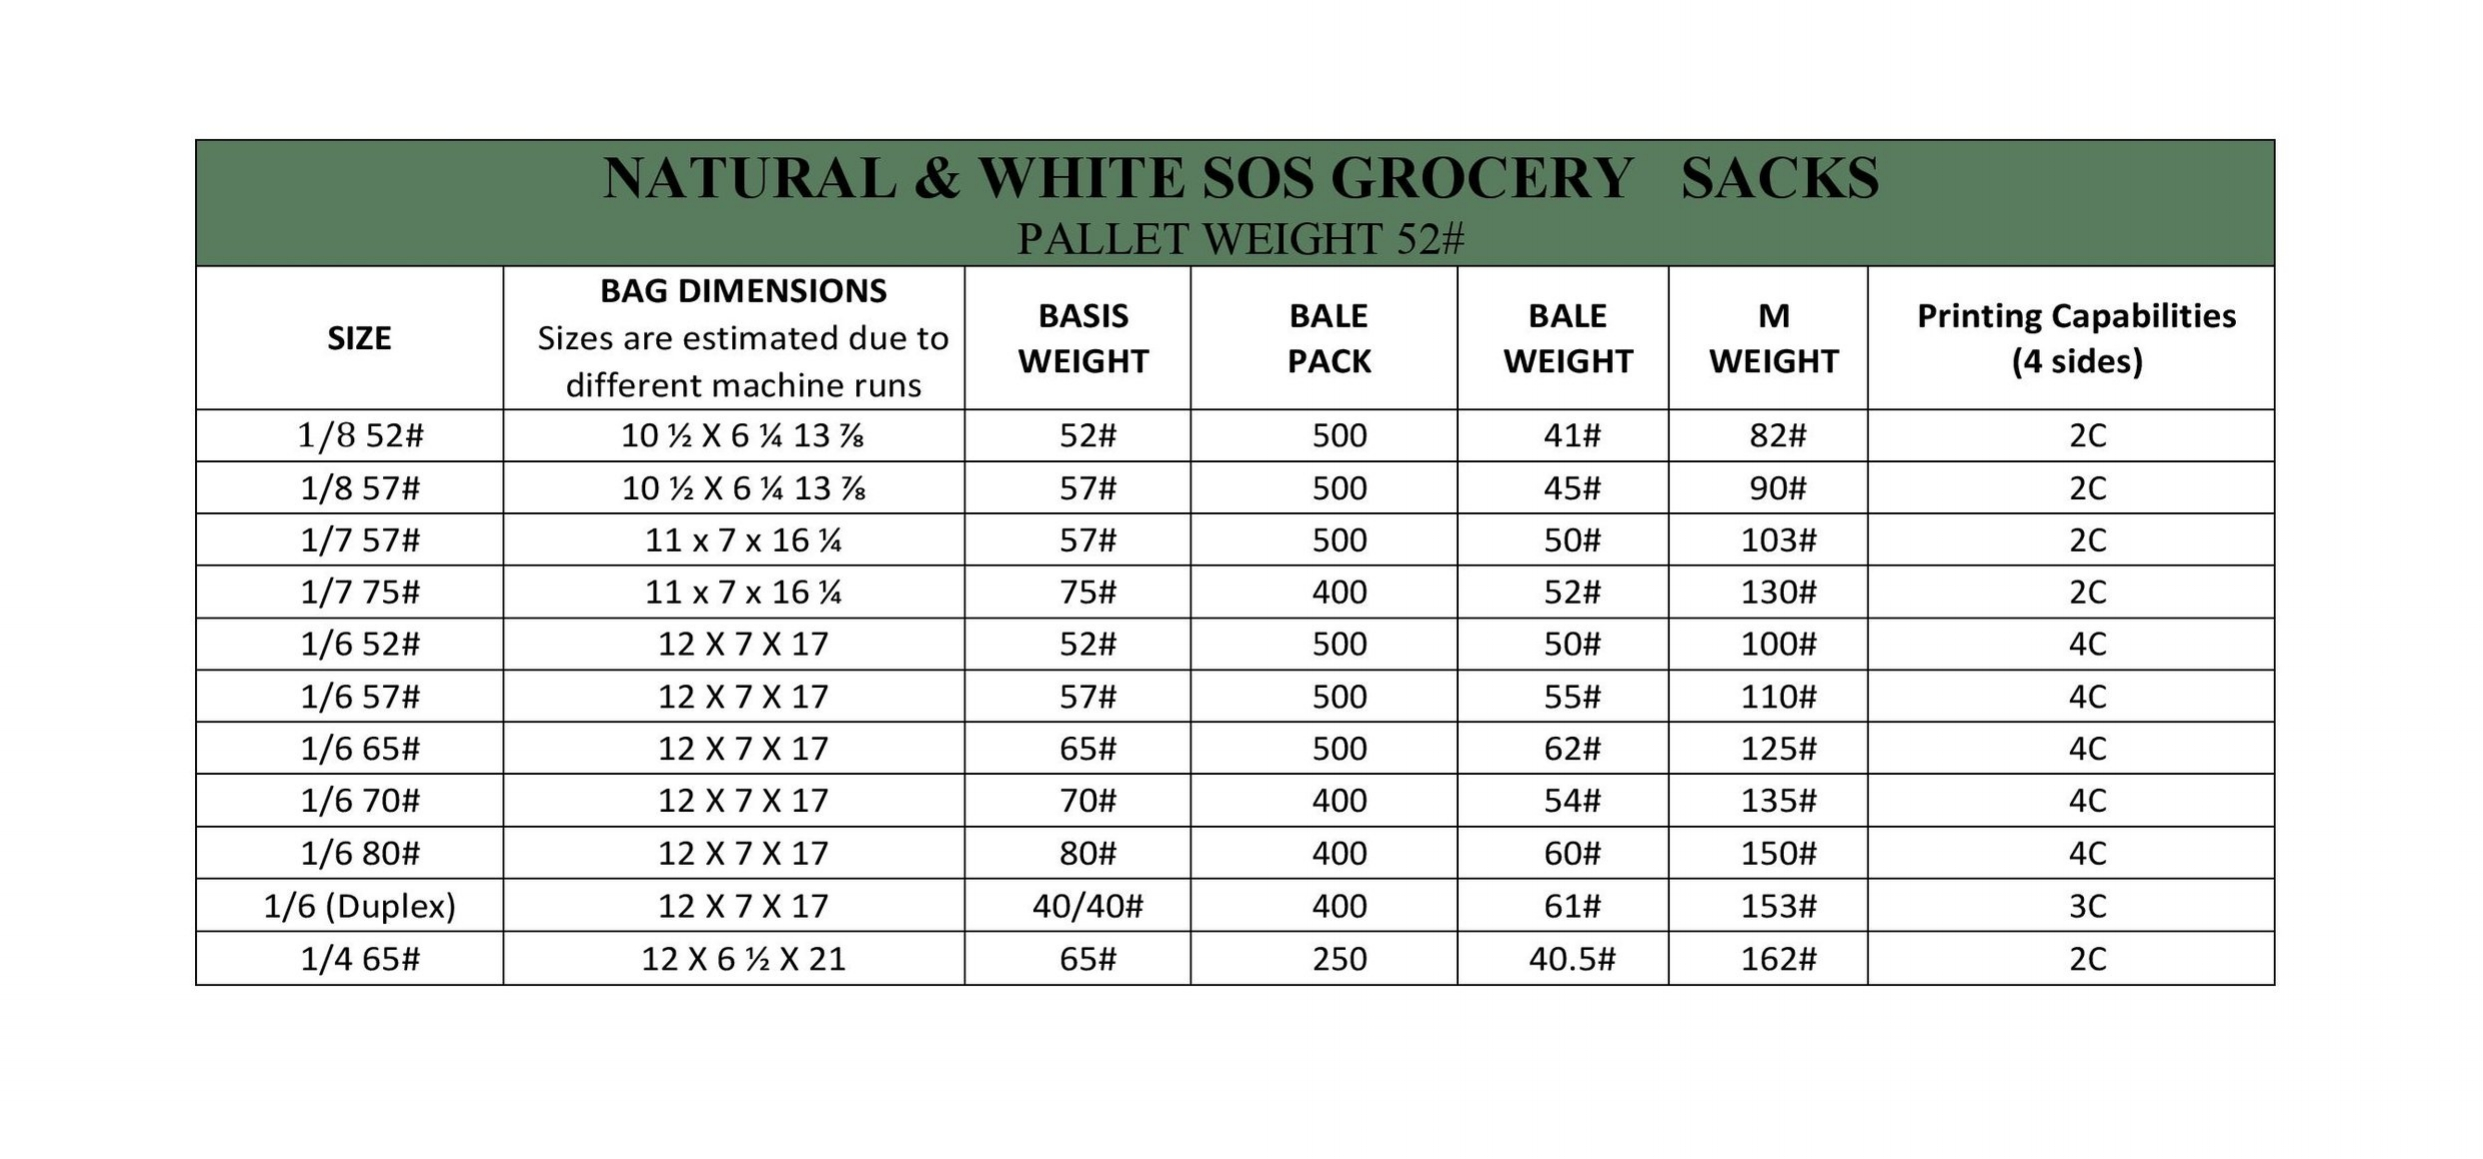 Ross & Wallace SOS Grocery Sacks Specifications